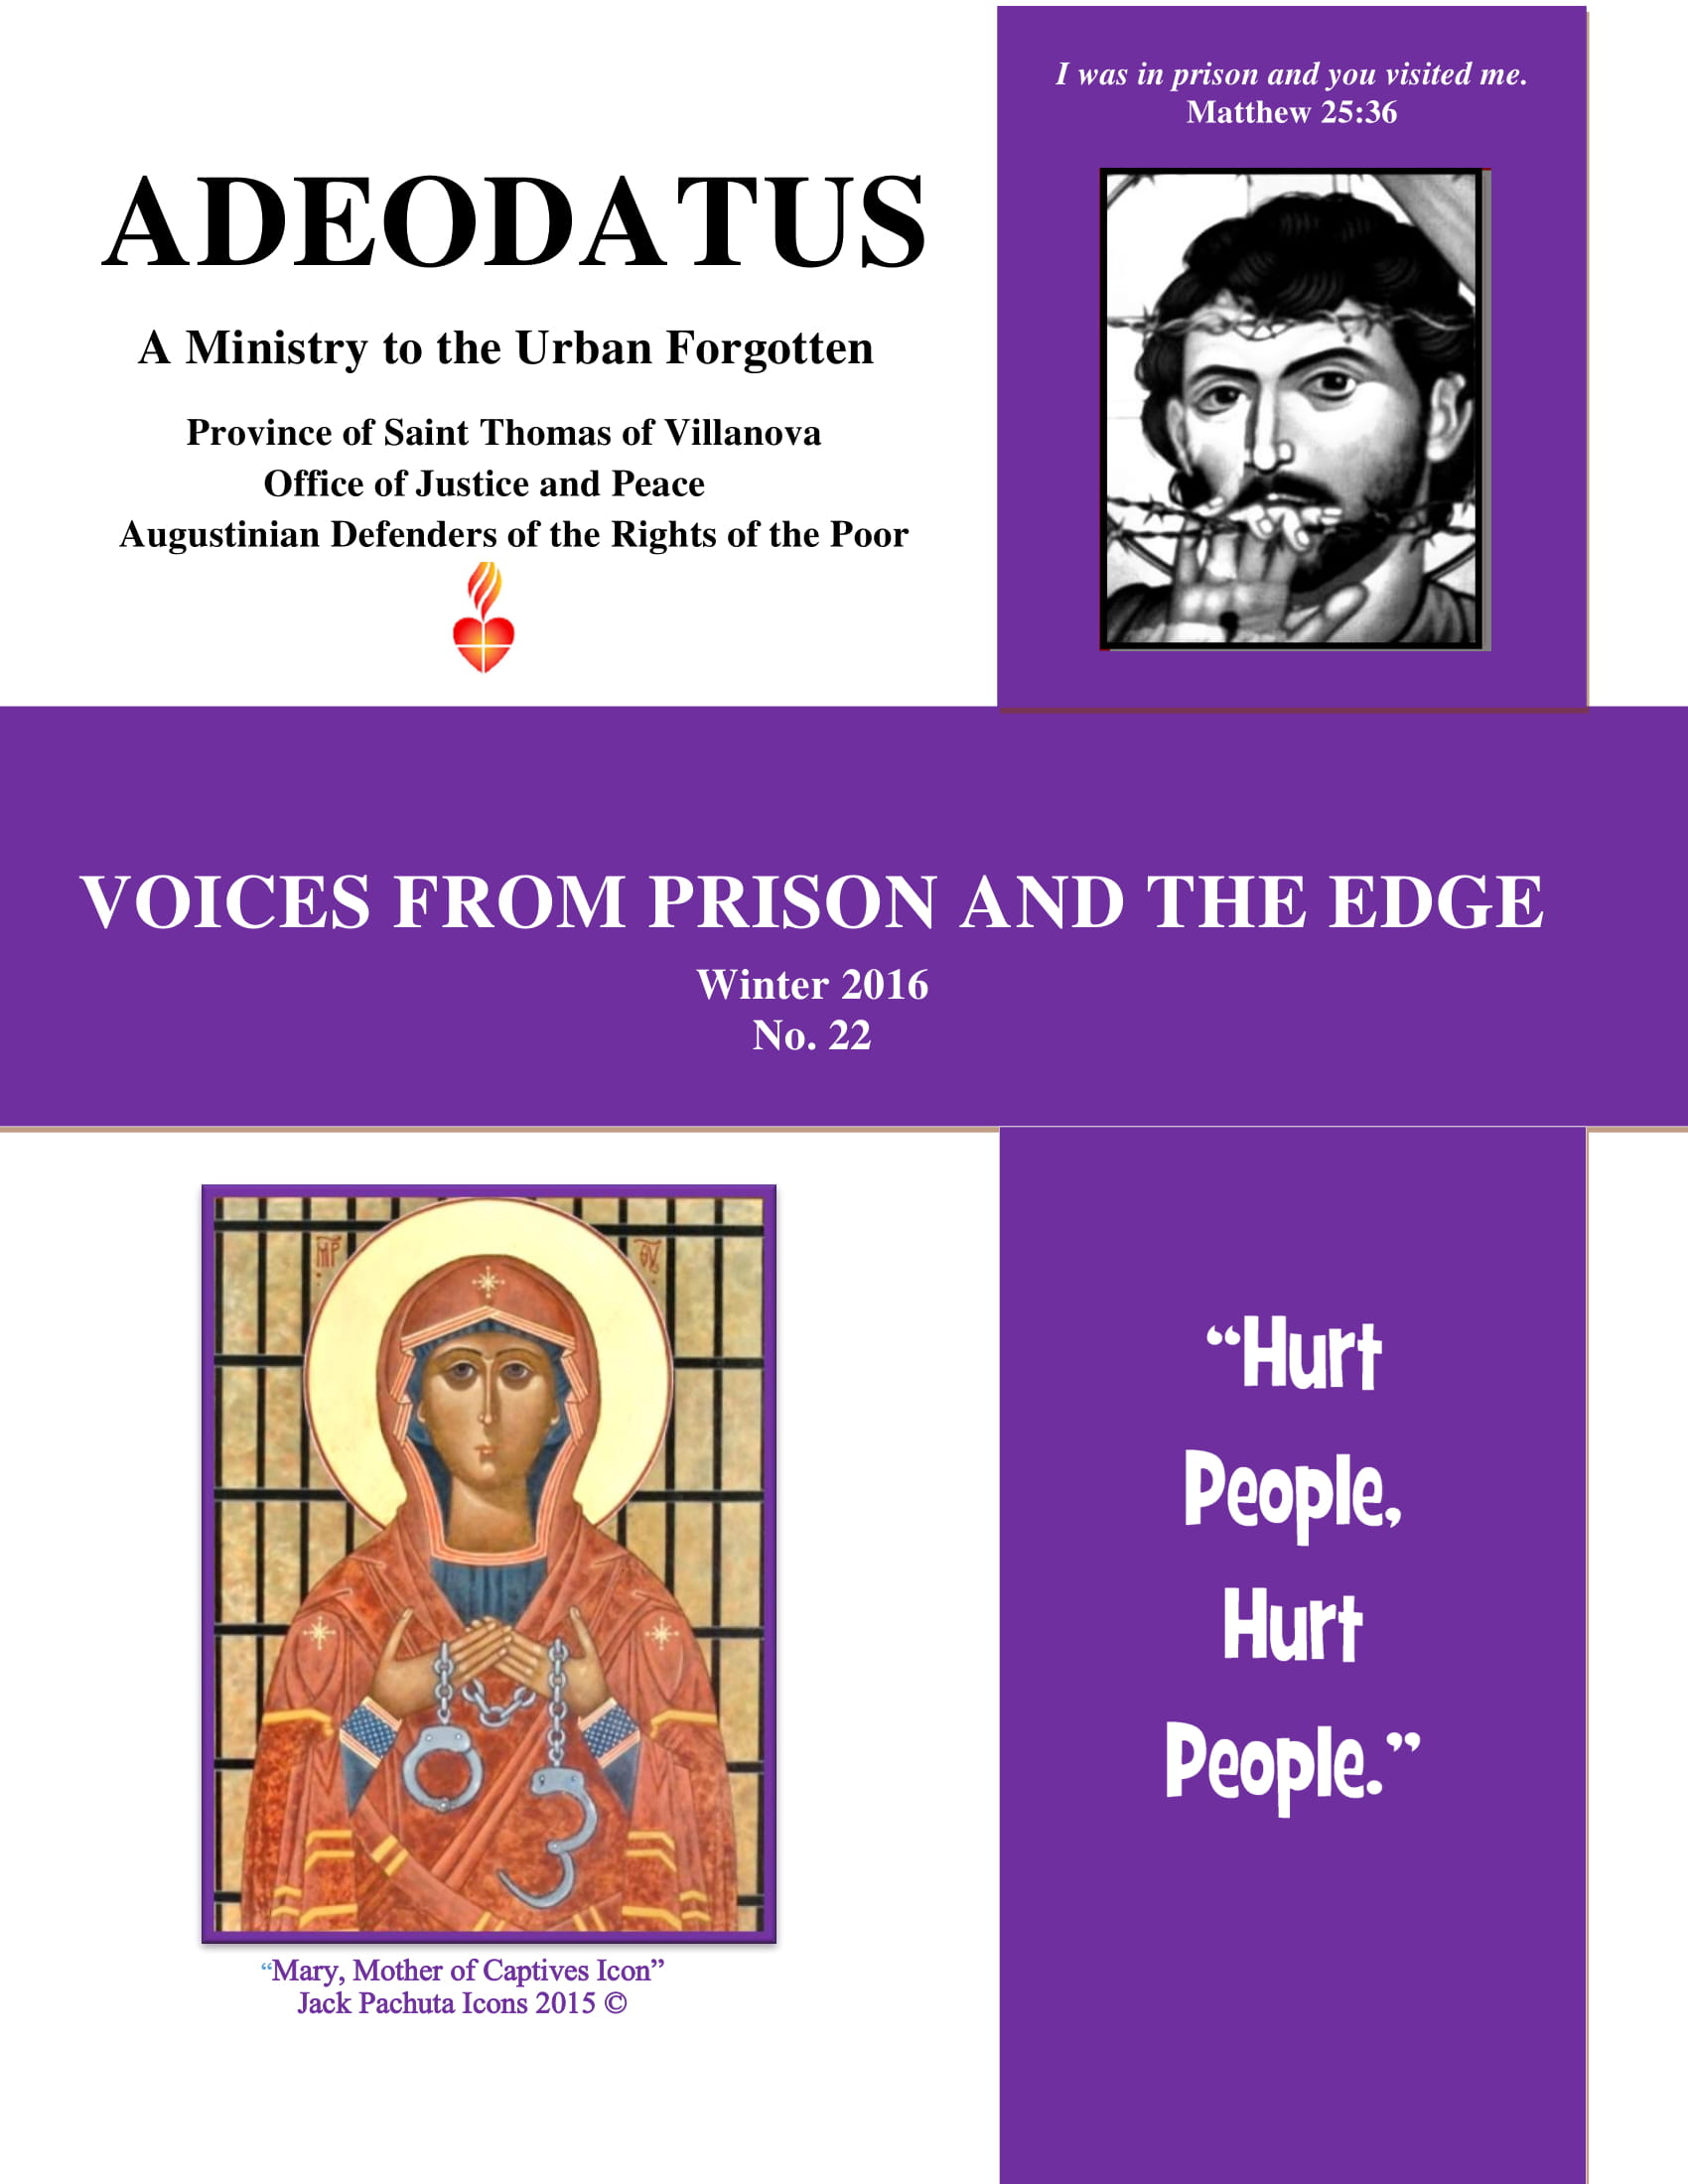 Voices From Prison 22-1.jpg